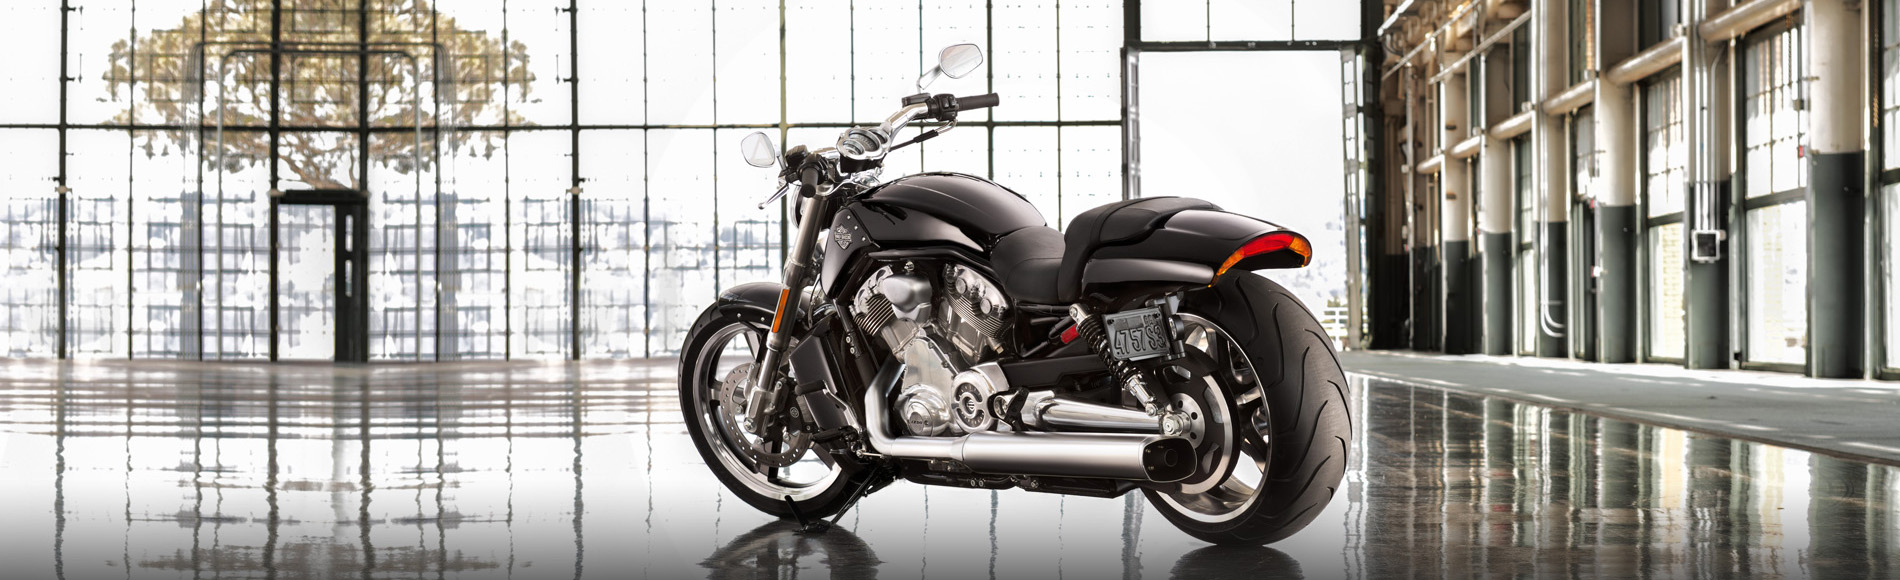 13-hd-v-rod-musle-bs-1